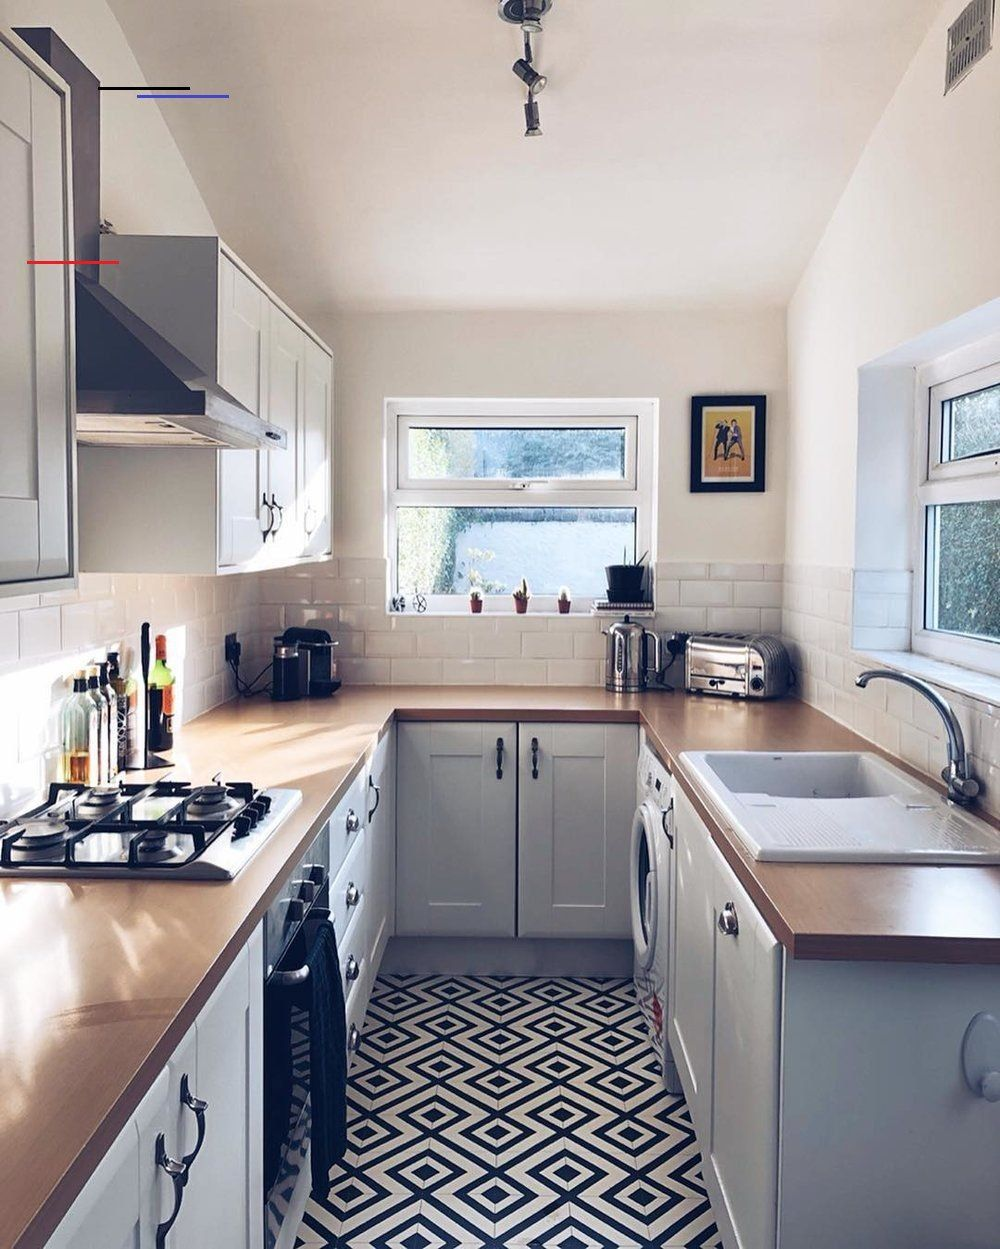 11 Beautiful Galley Kitchen Design Ideas Fifi Mcgee Interior Blogger Uk Galleykitchenlayouts Galley Kitchens Sometimes Get A Bad Rap In The Shadow I 2020 Kok